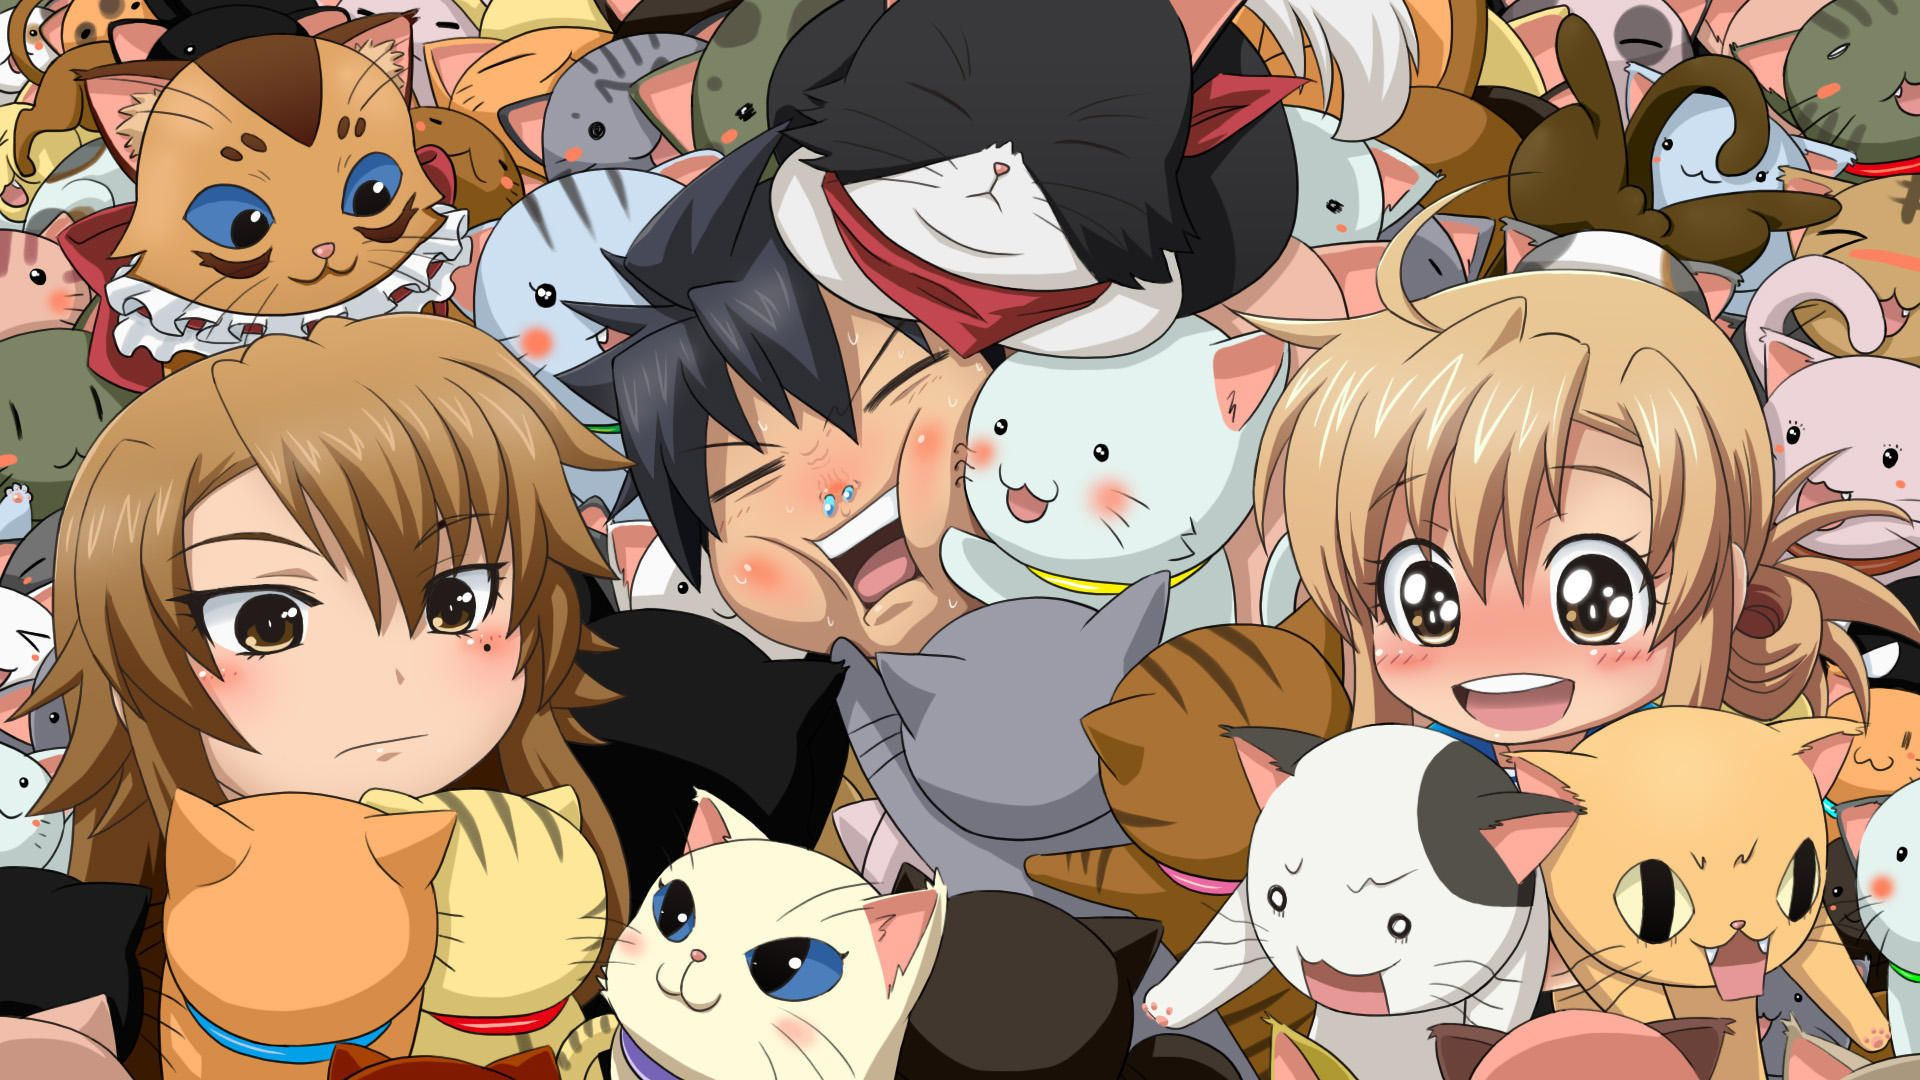 Download Wallpaper Cat, Anime, Art, Girl, Cataposs Whim, Section Other In